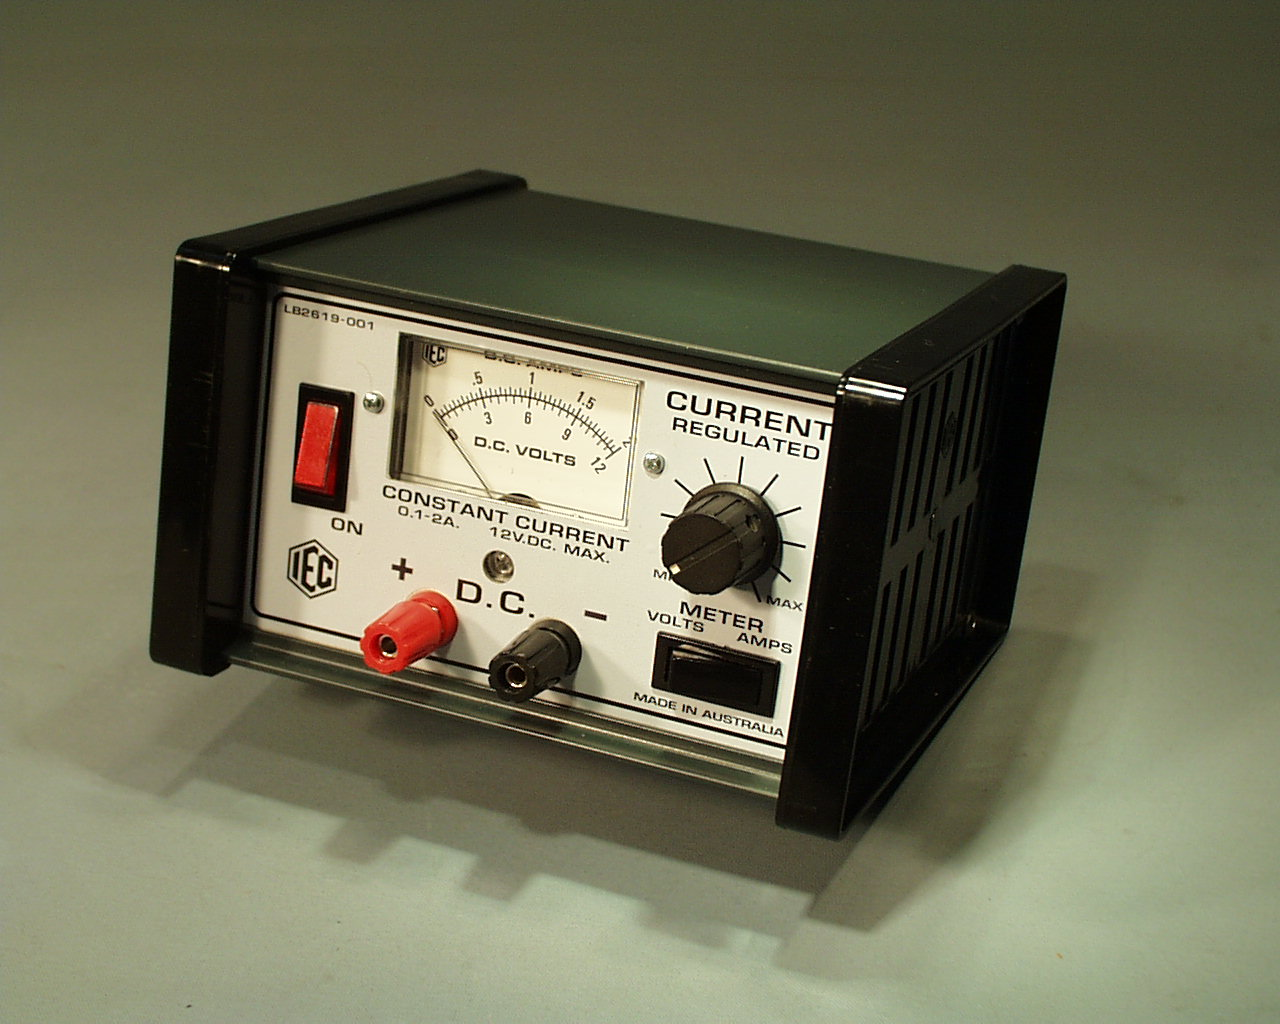 Power Supply Variable Constant Current 0 2a 12v Max Lb2619 001 Supplies